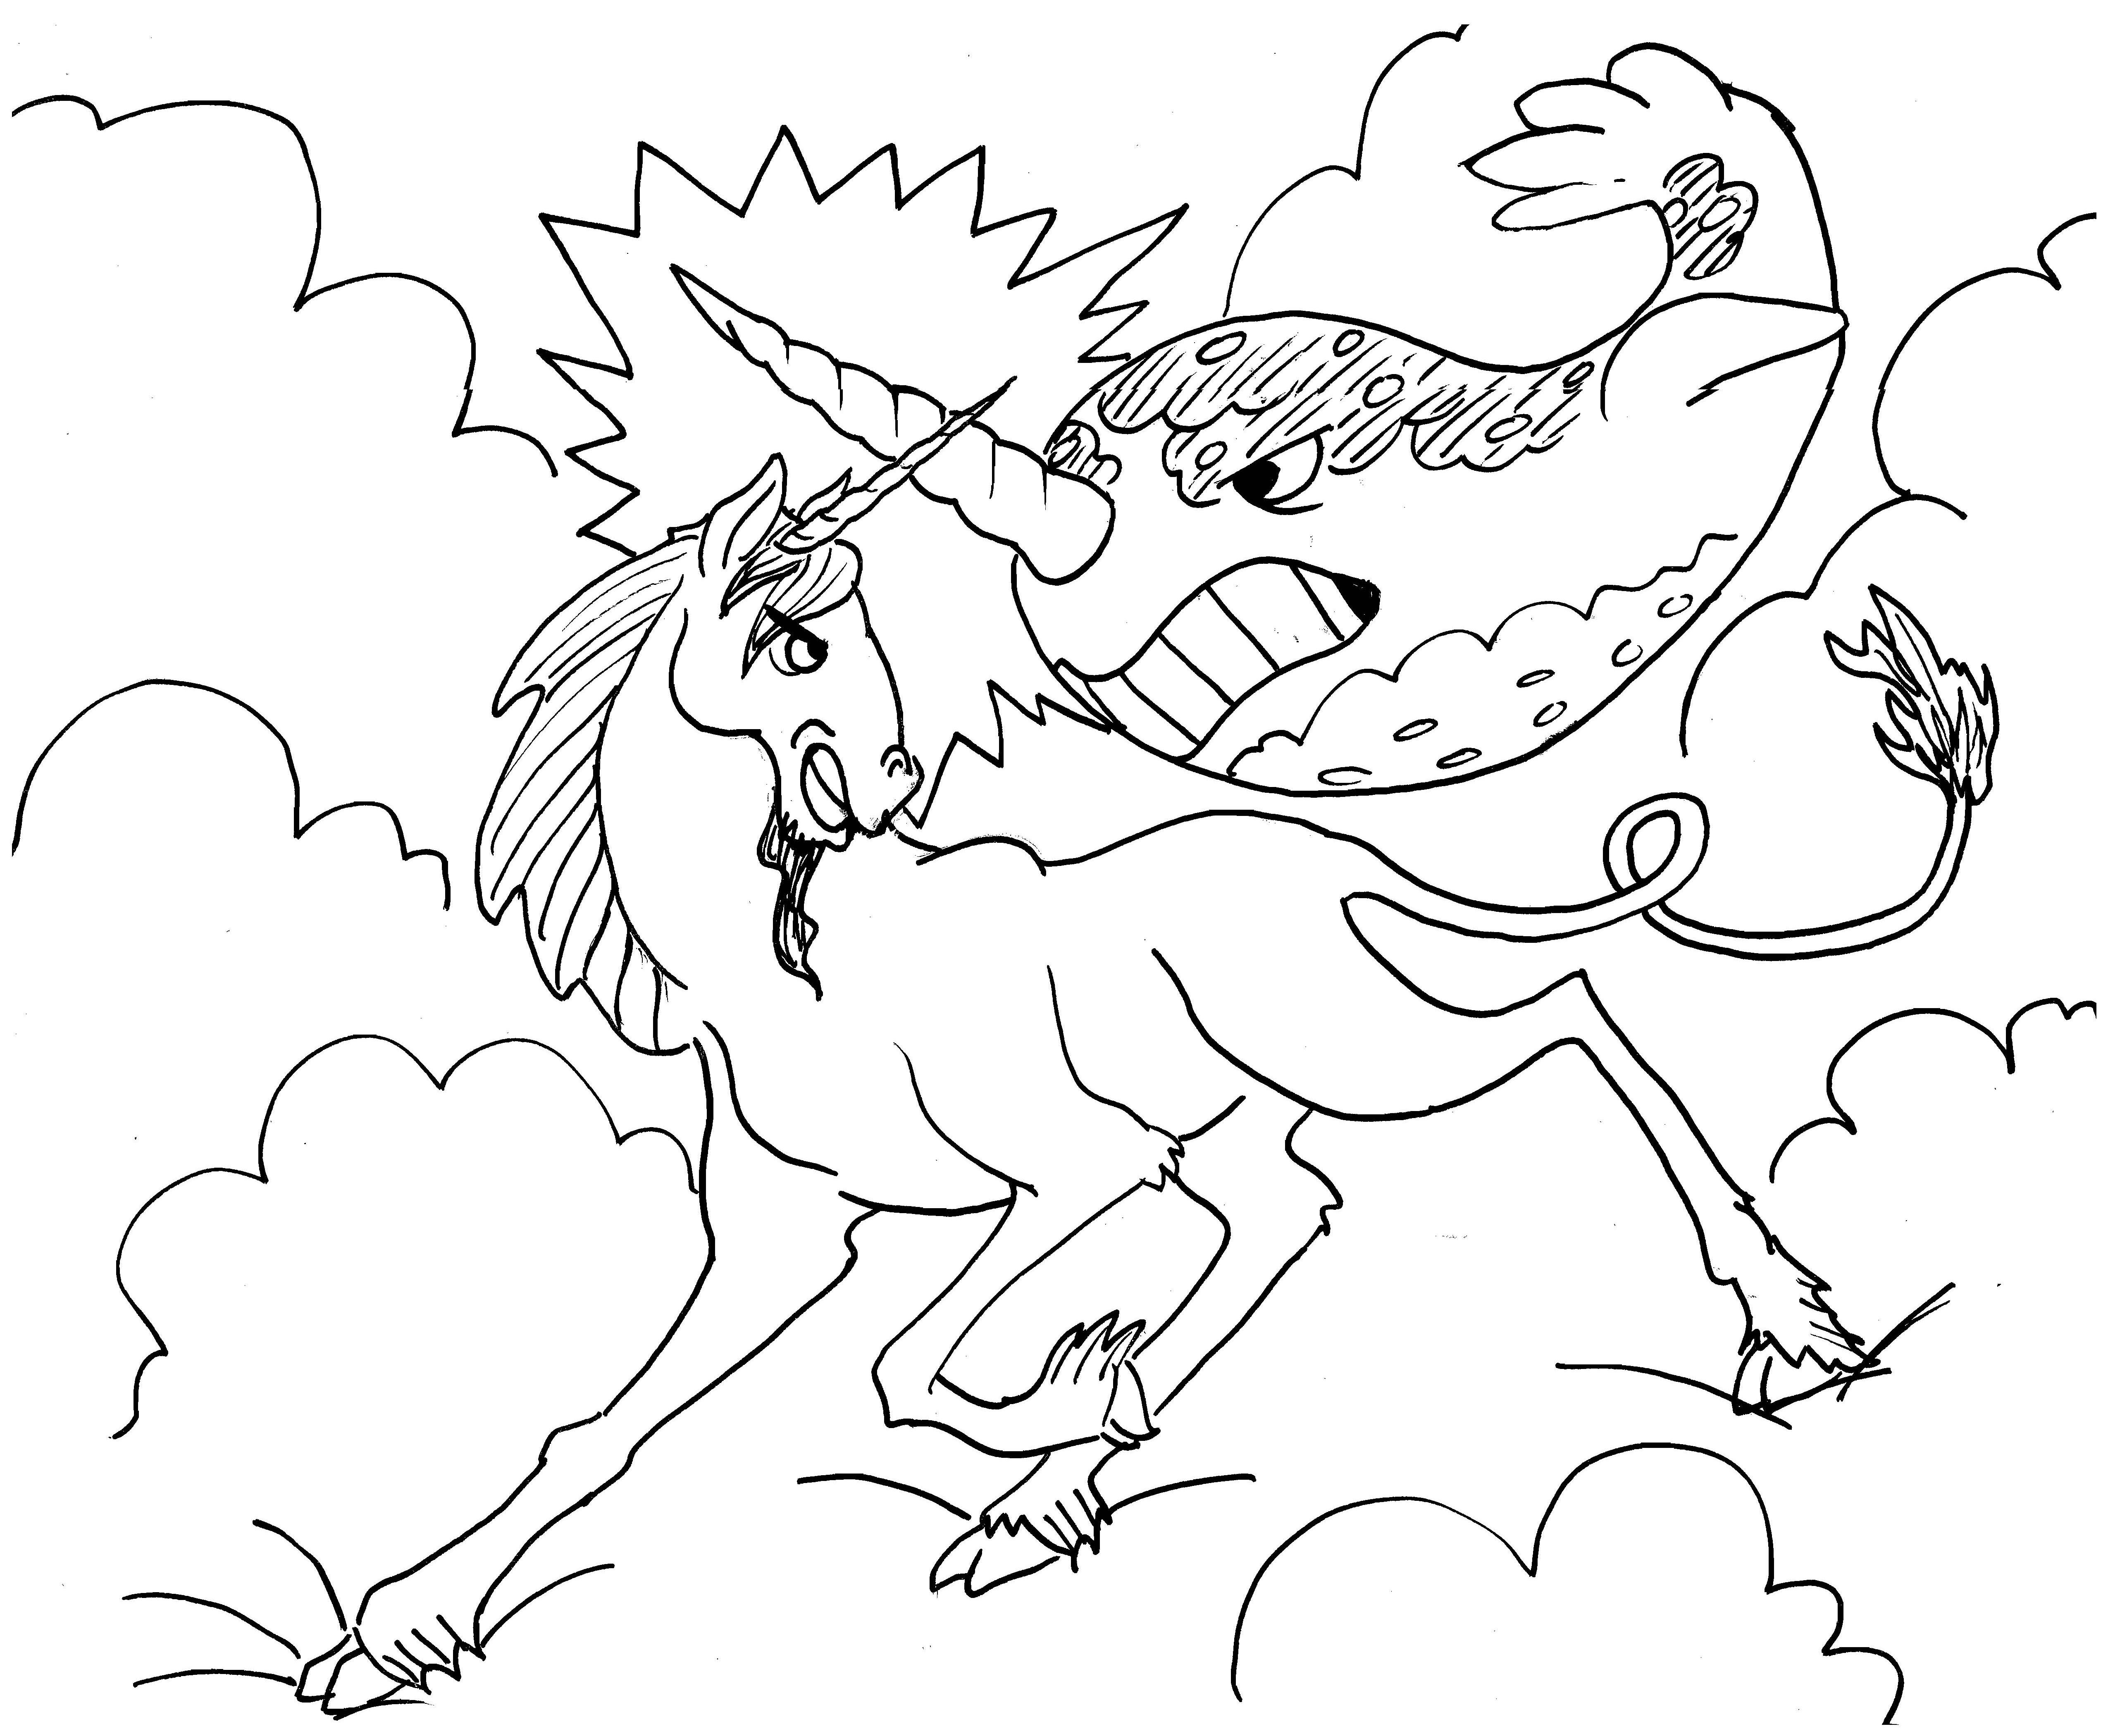 20100426UnicornVsNarwhal Unicorn coloring pages